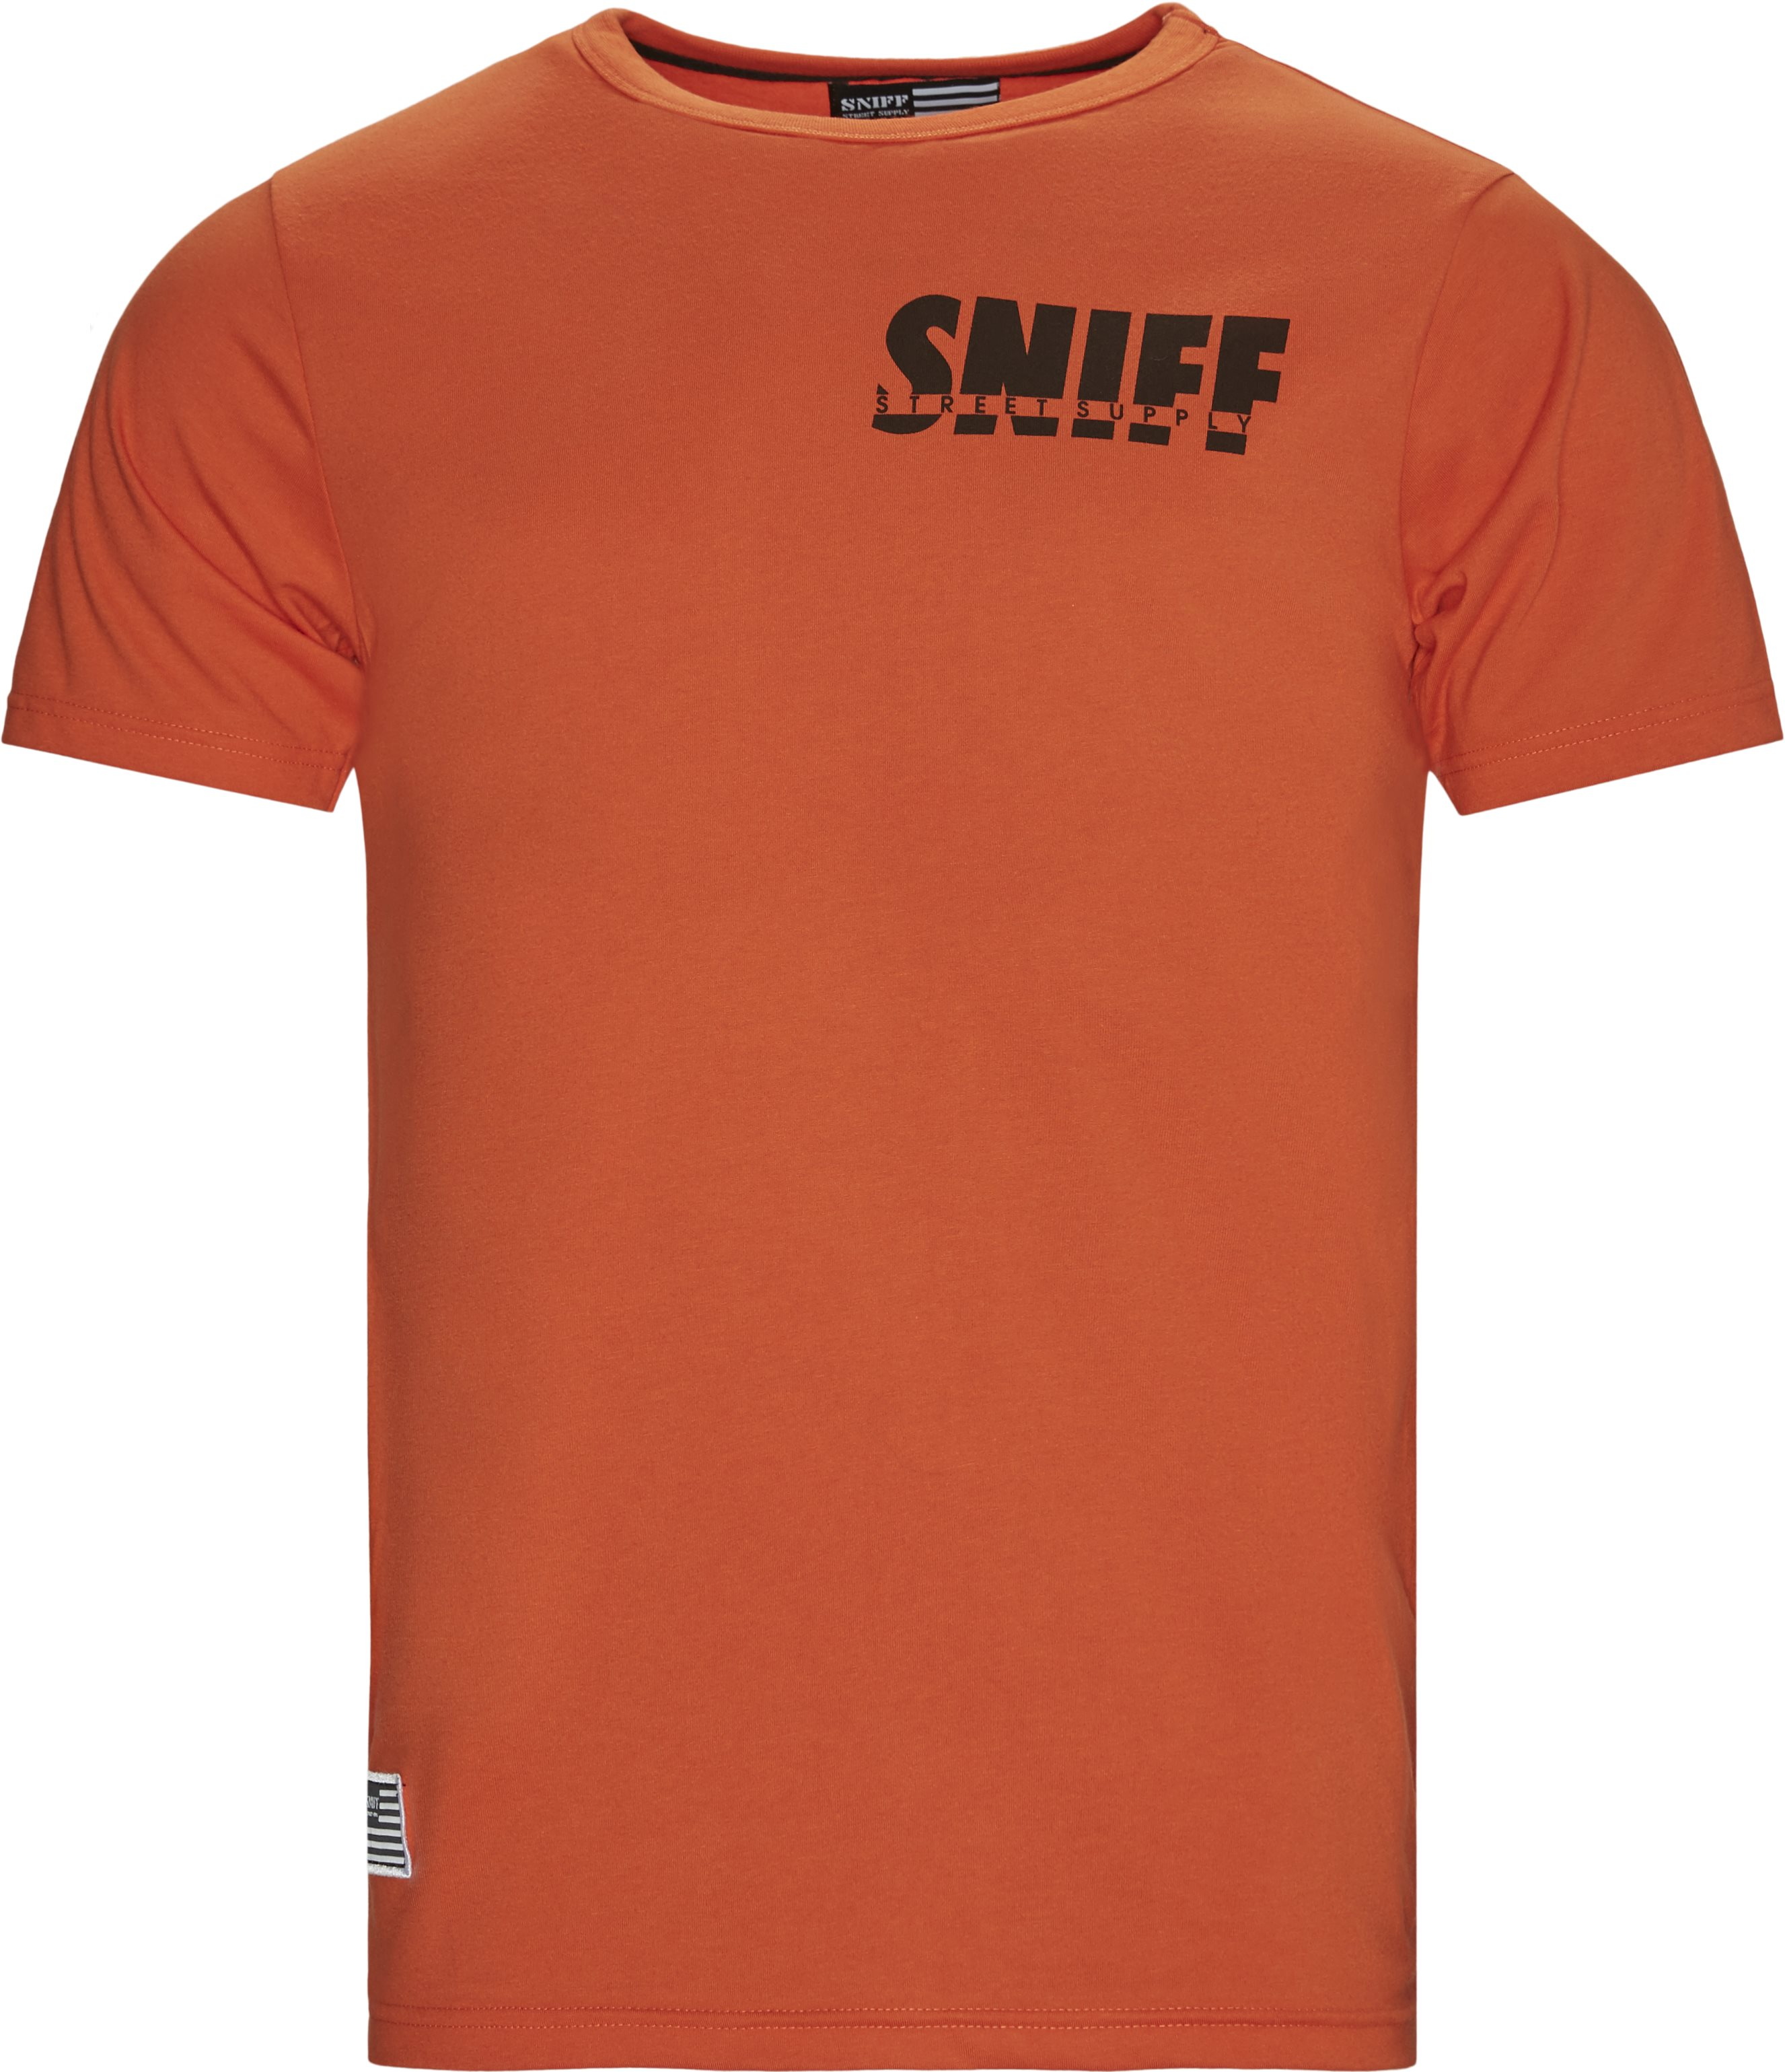 Smokey Tee - T-shirts - Regular - Orange